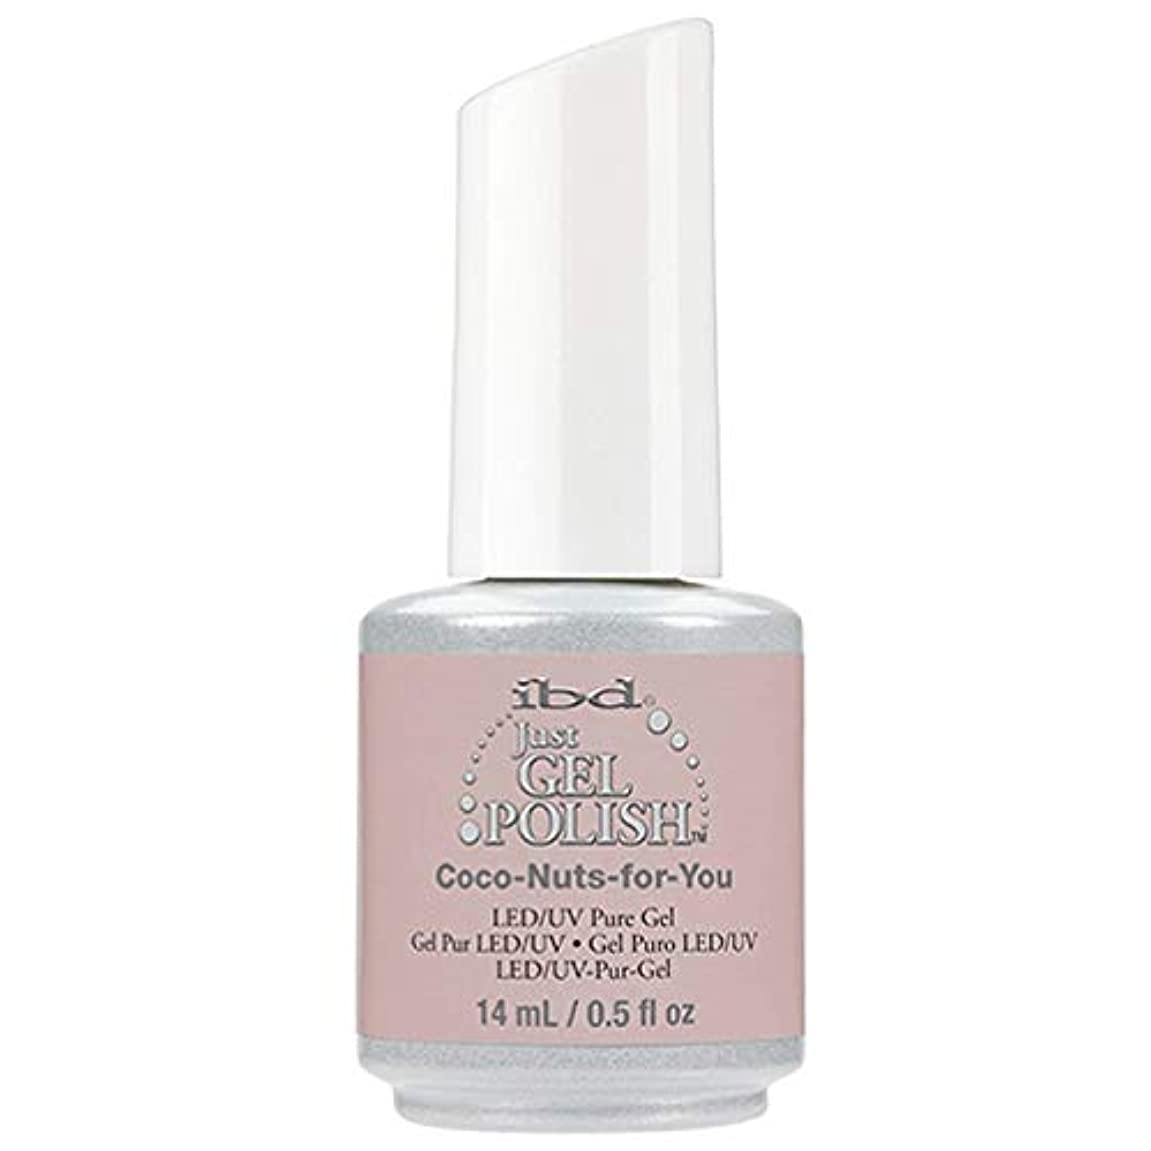 セメント違反するネックレットibd Just Gel Nail Polish - Coco-Nuts-for-You - 14ml / 0.5oz